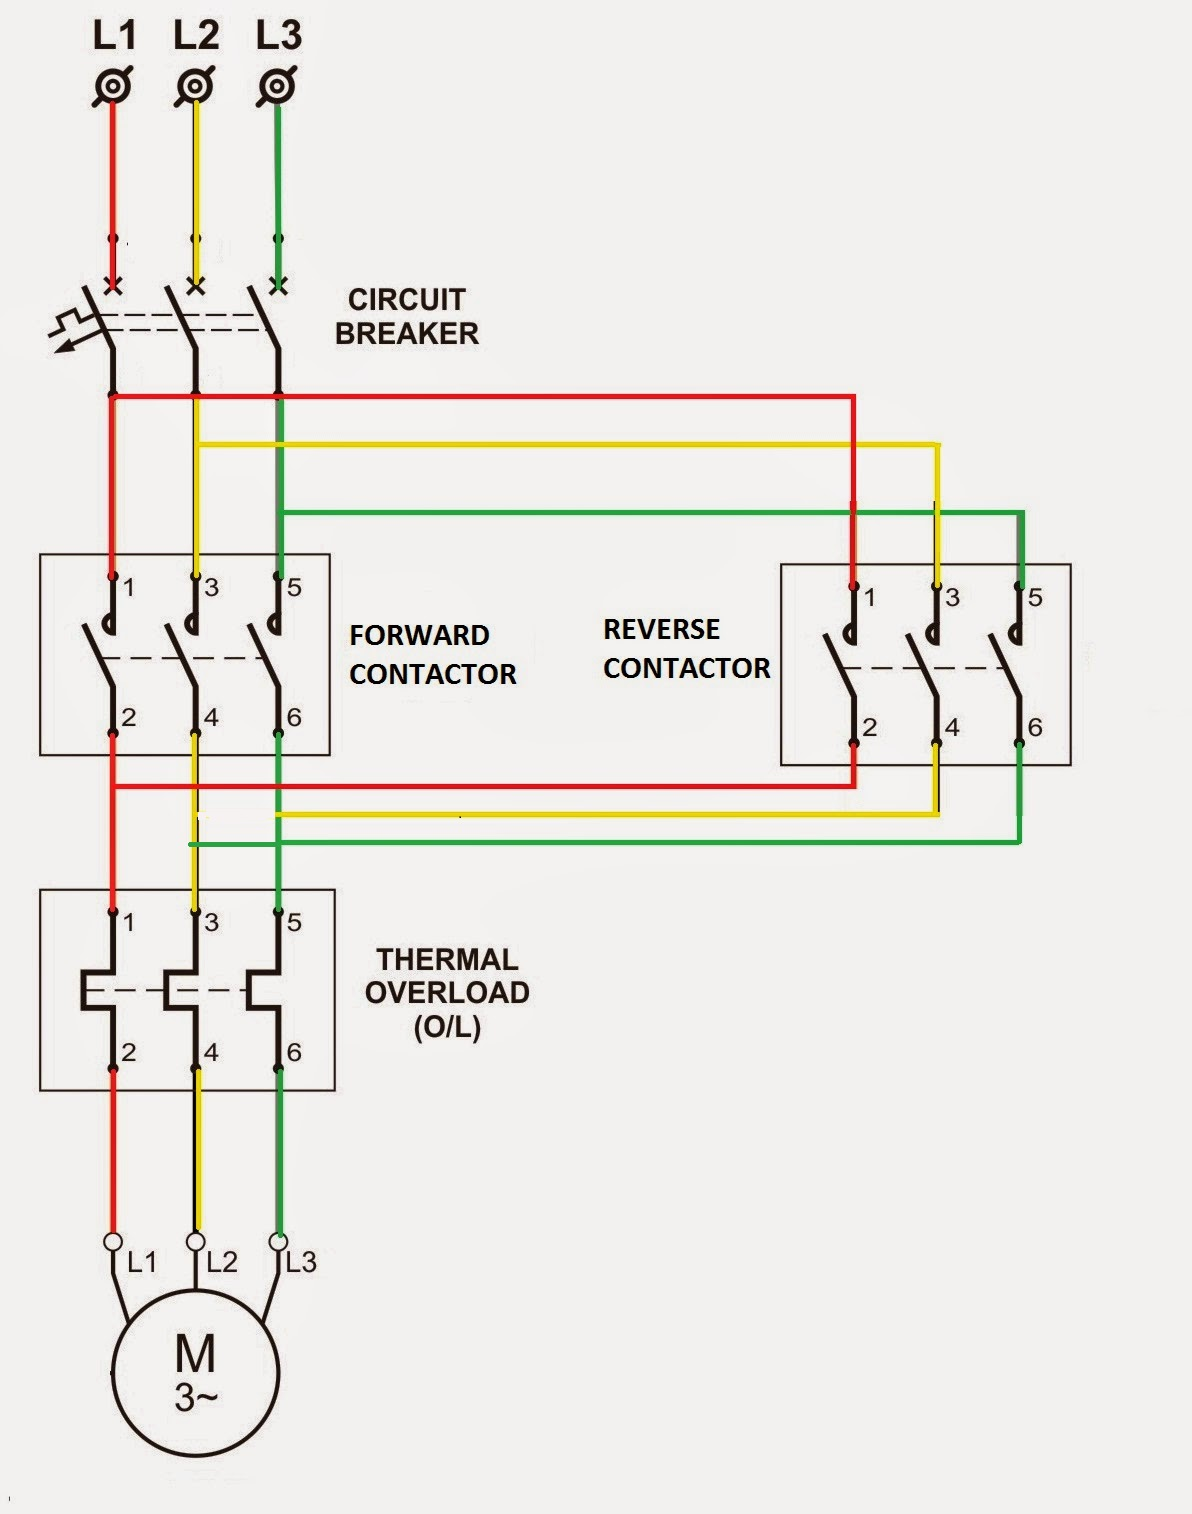 Dol contactor wiring diagram custom wiring diagram electrical standards direct online applications reverse forward rh electrialstandards blogspot com direct online starter wiring diagram asfbconference2016 Images